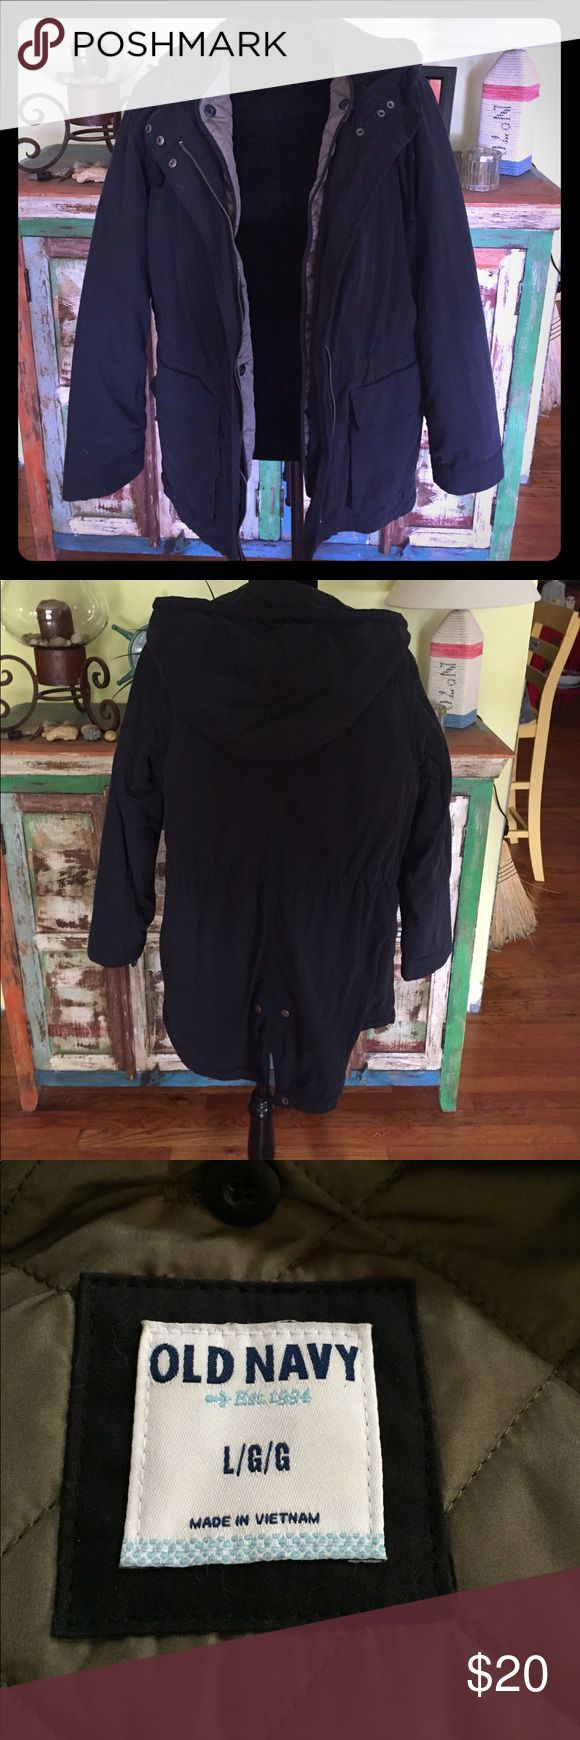 Women's Military Look Jacket Old Navy, removable quilted lining..Black. Size Large Old Navy Jackets & Coats Utility Jackets